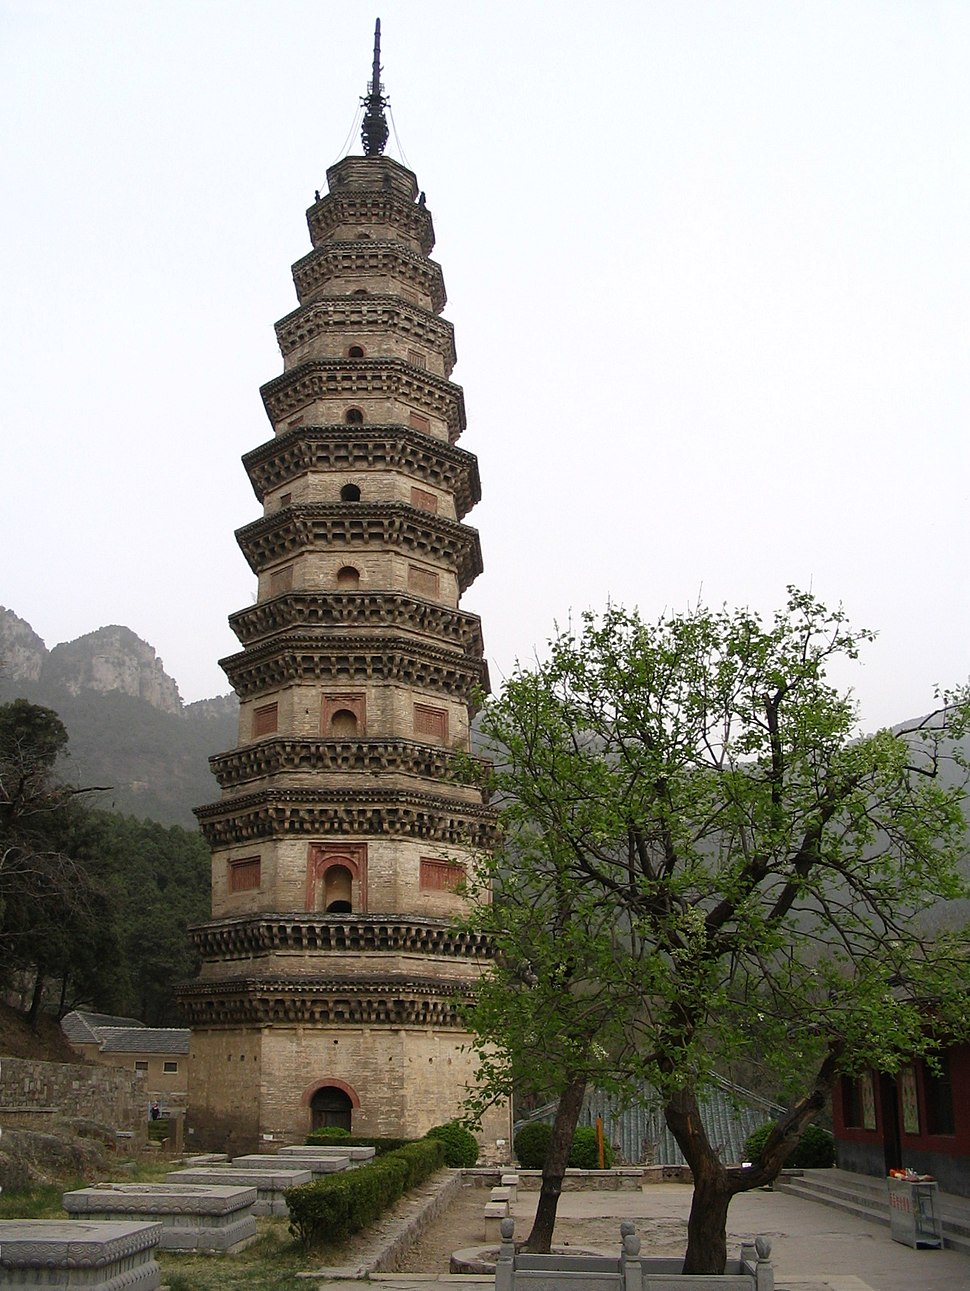 A thin, nine story tall octagonal pagoda. It is made of brown-orange brick and stone, and appears to lean slightly. Each floor is separated from the others by a double eave.